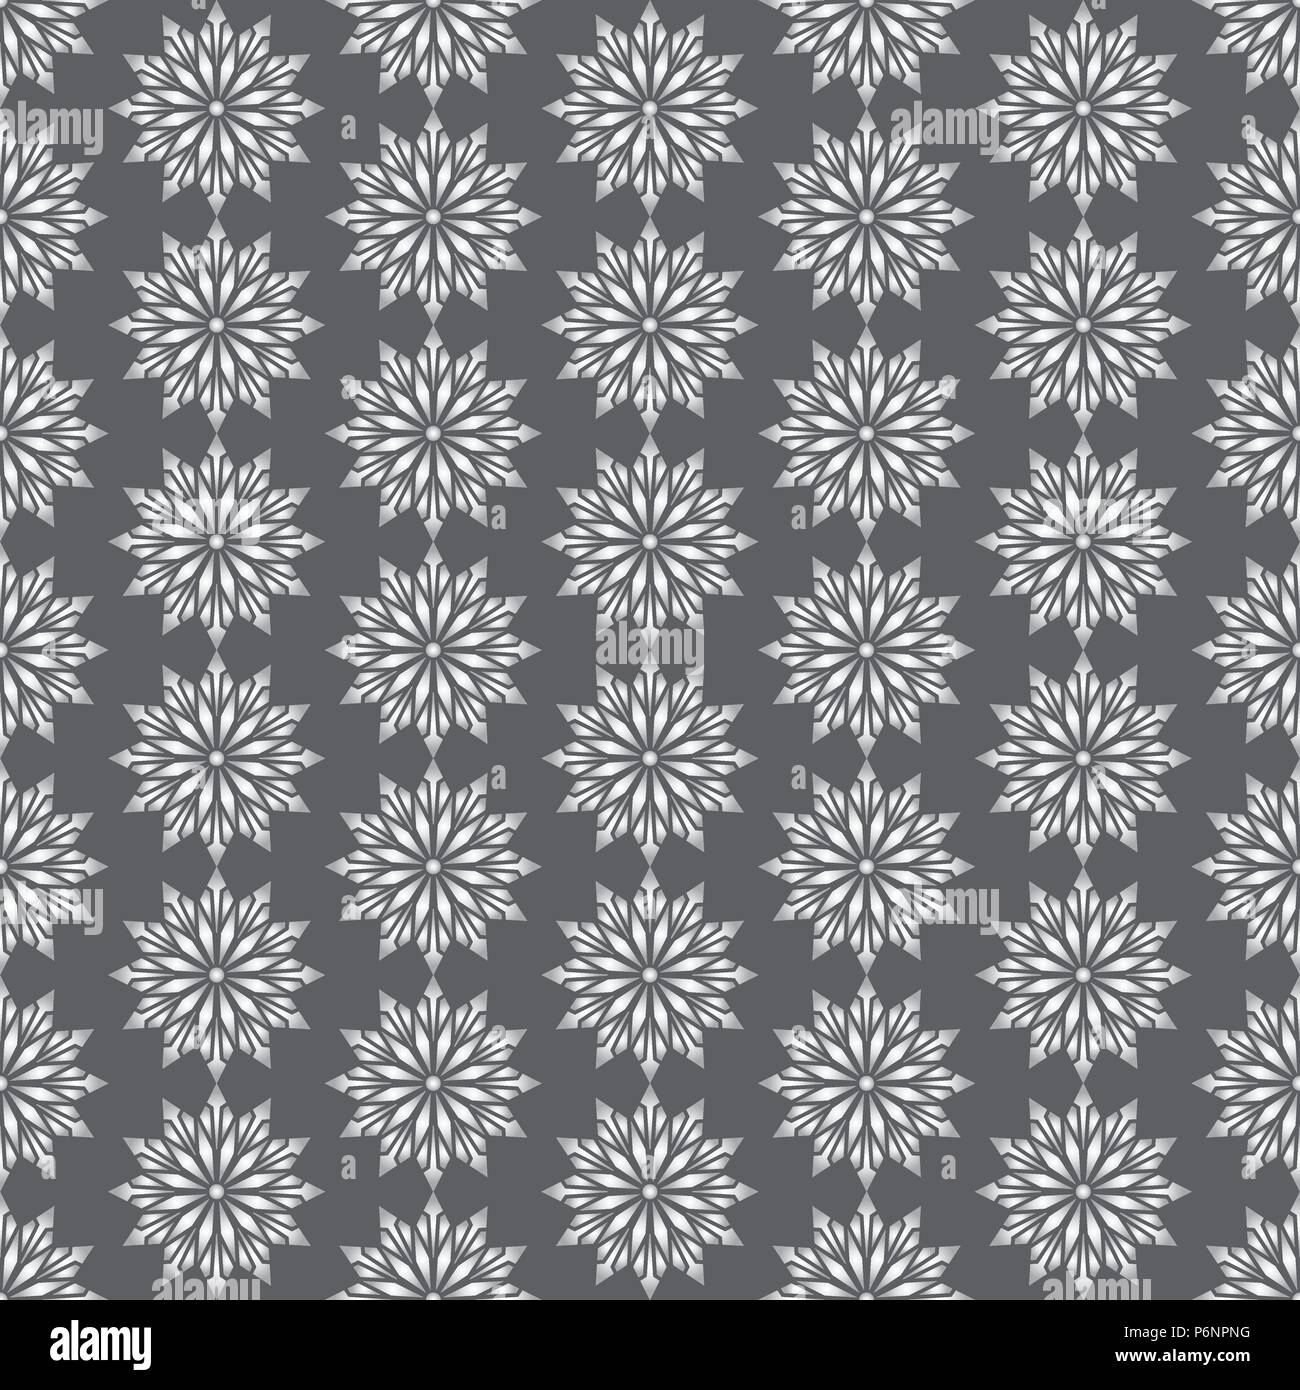 Silver modern flower and arrow and rhomboid shape seamless pattern. Graphic bloom pattern for fashionable or classic design - Stock Vector